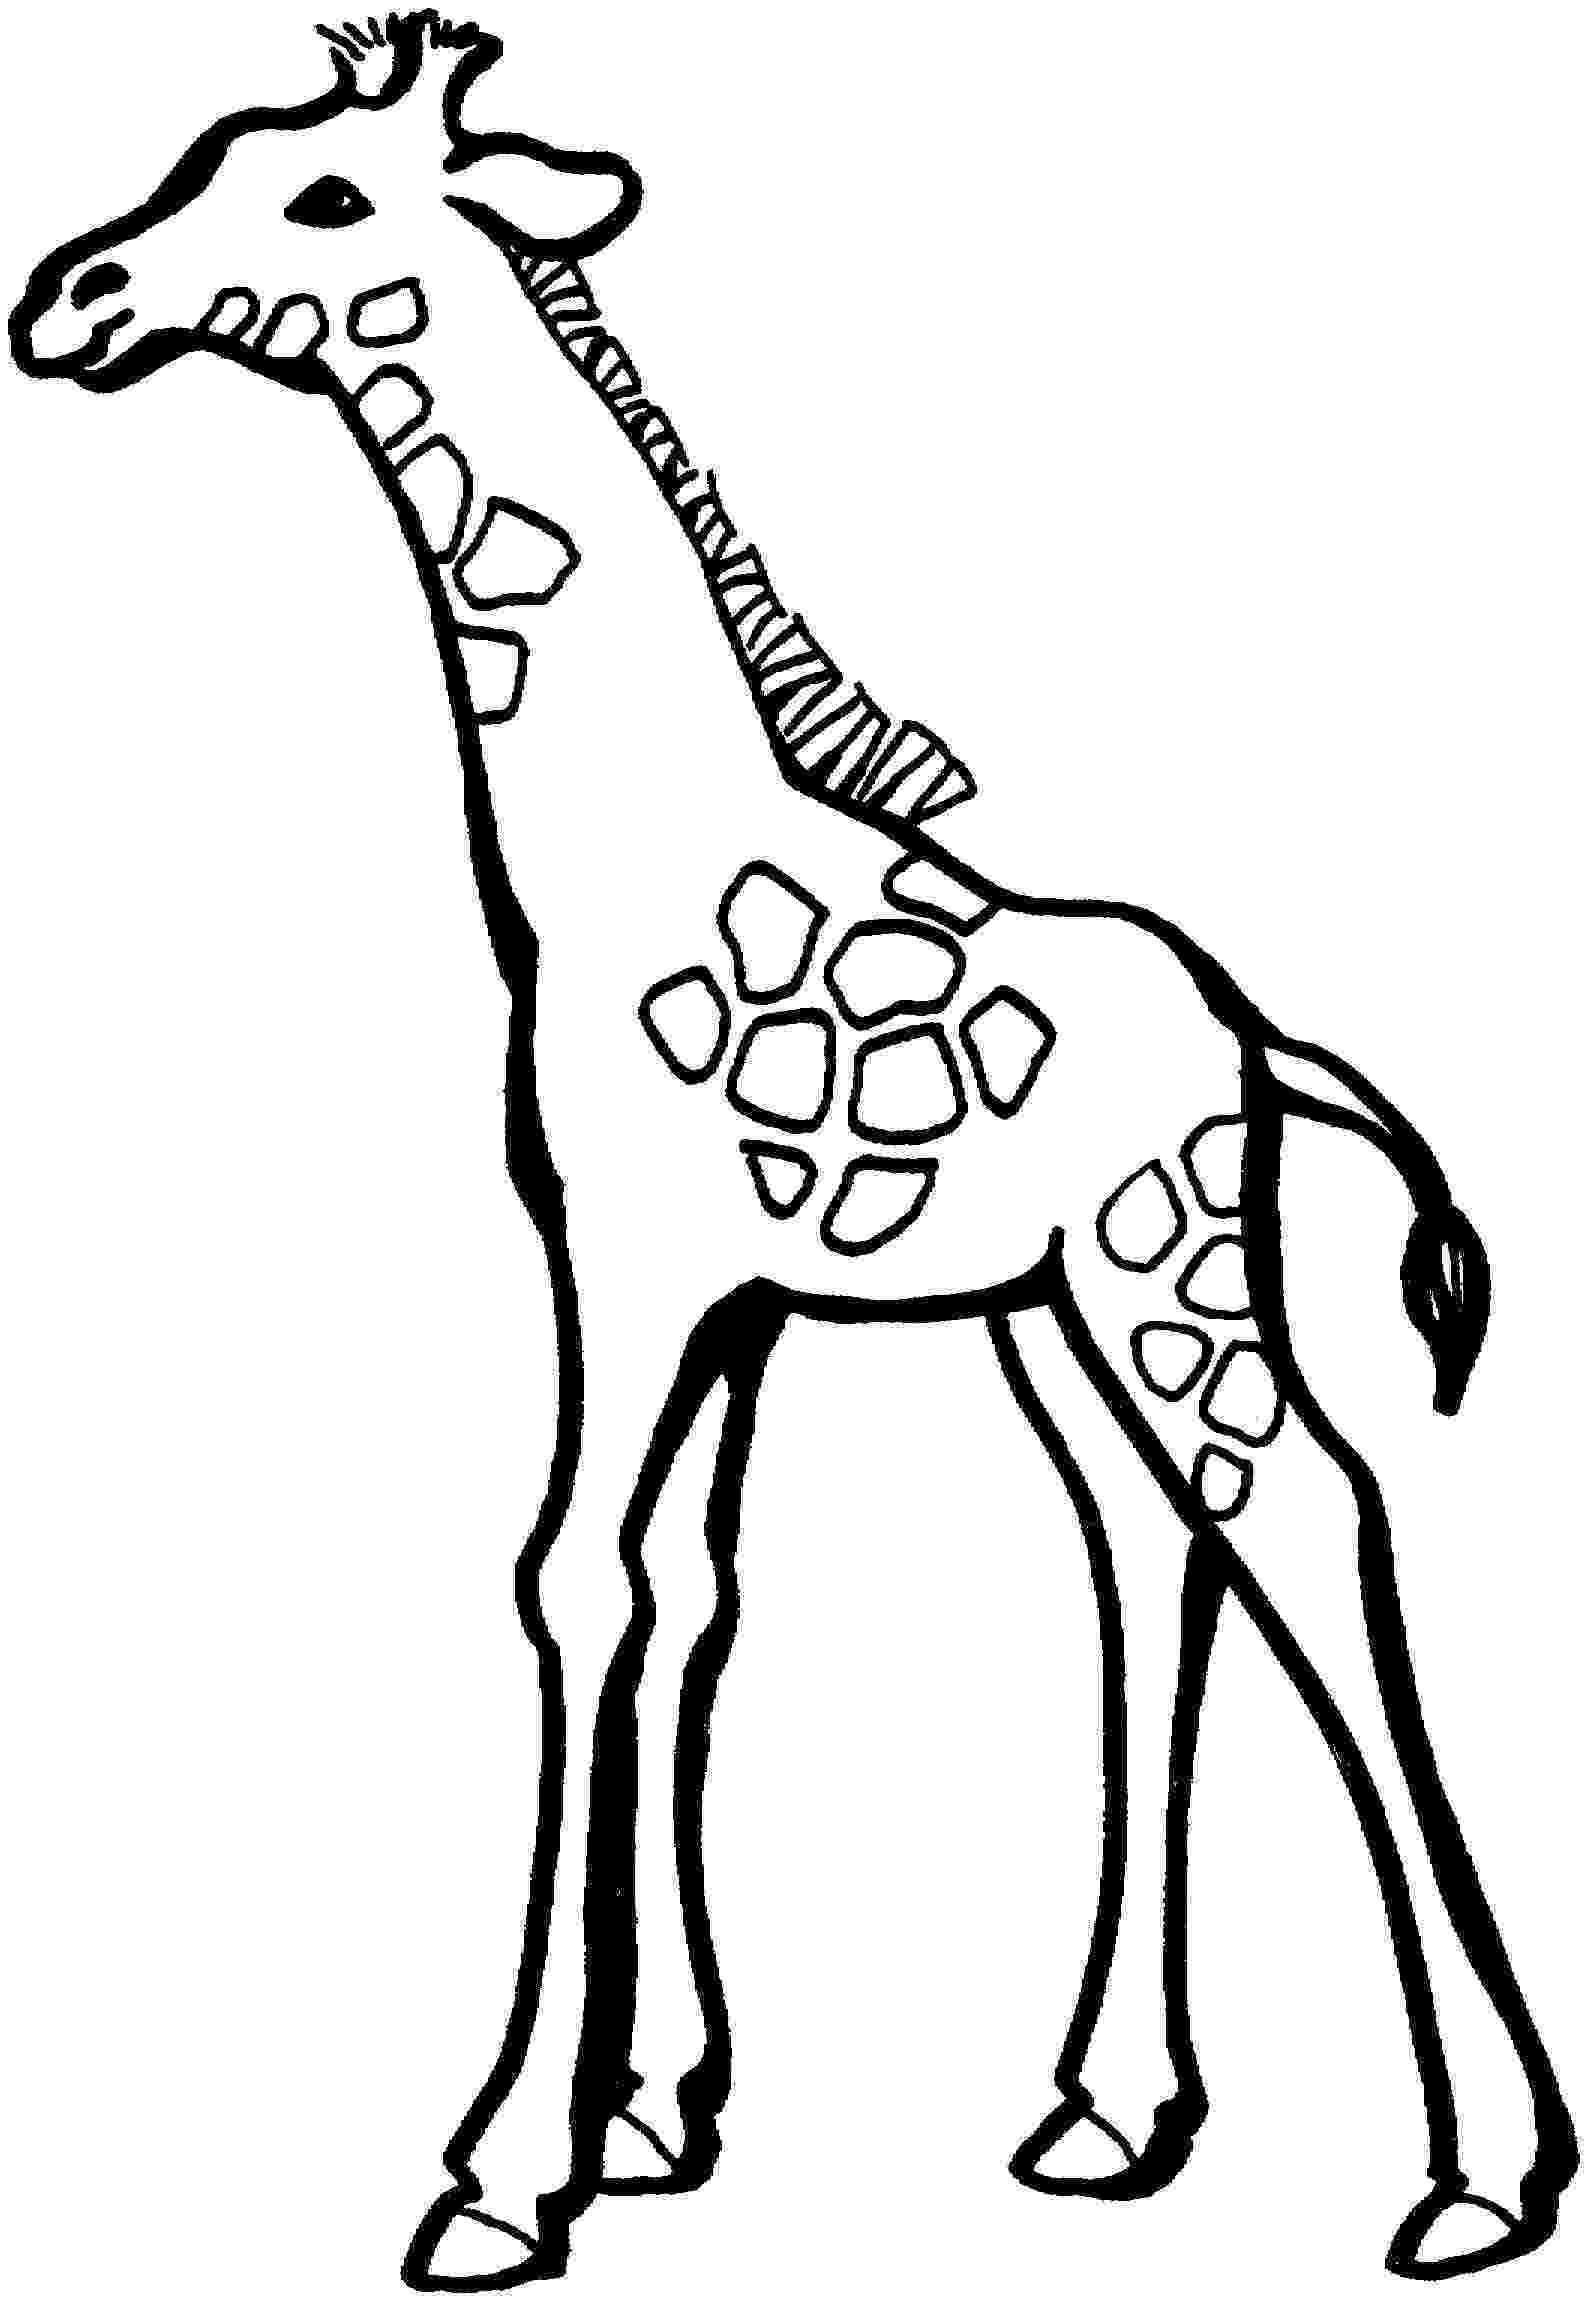 coloring page giraffe giraffe descprition and facts giraffe page coloring